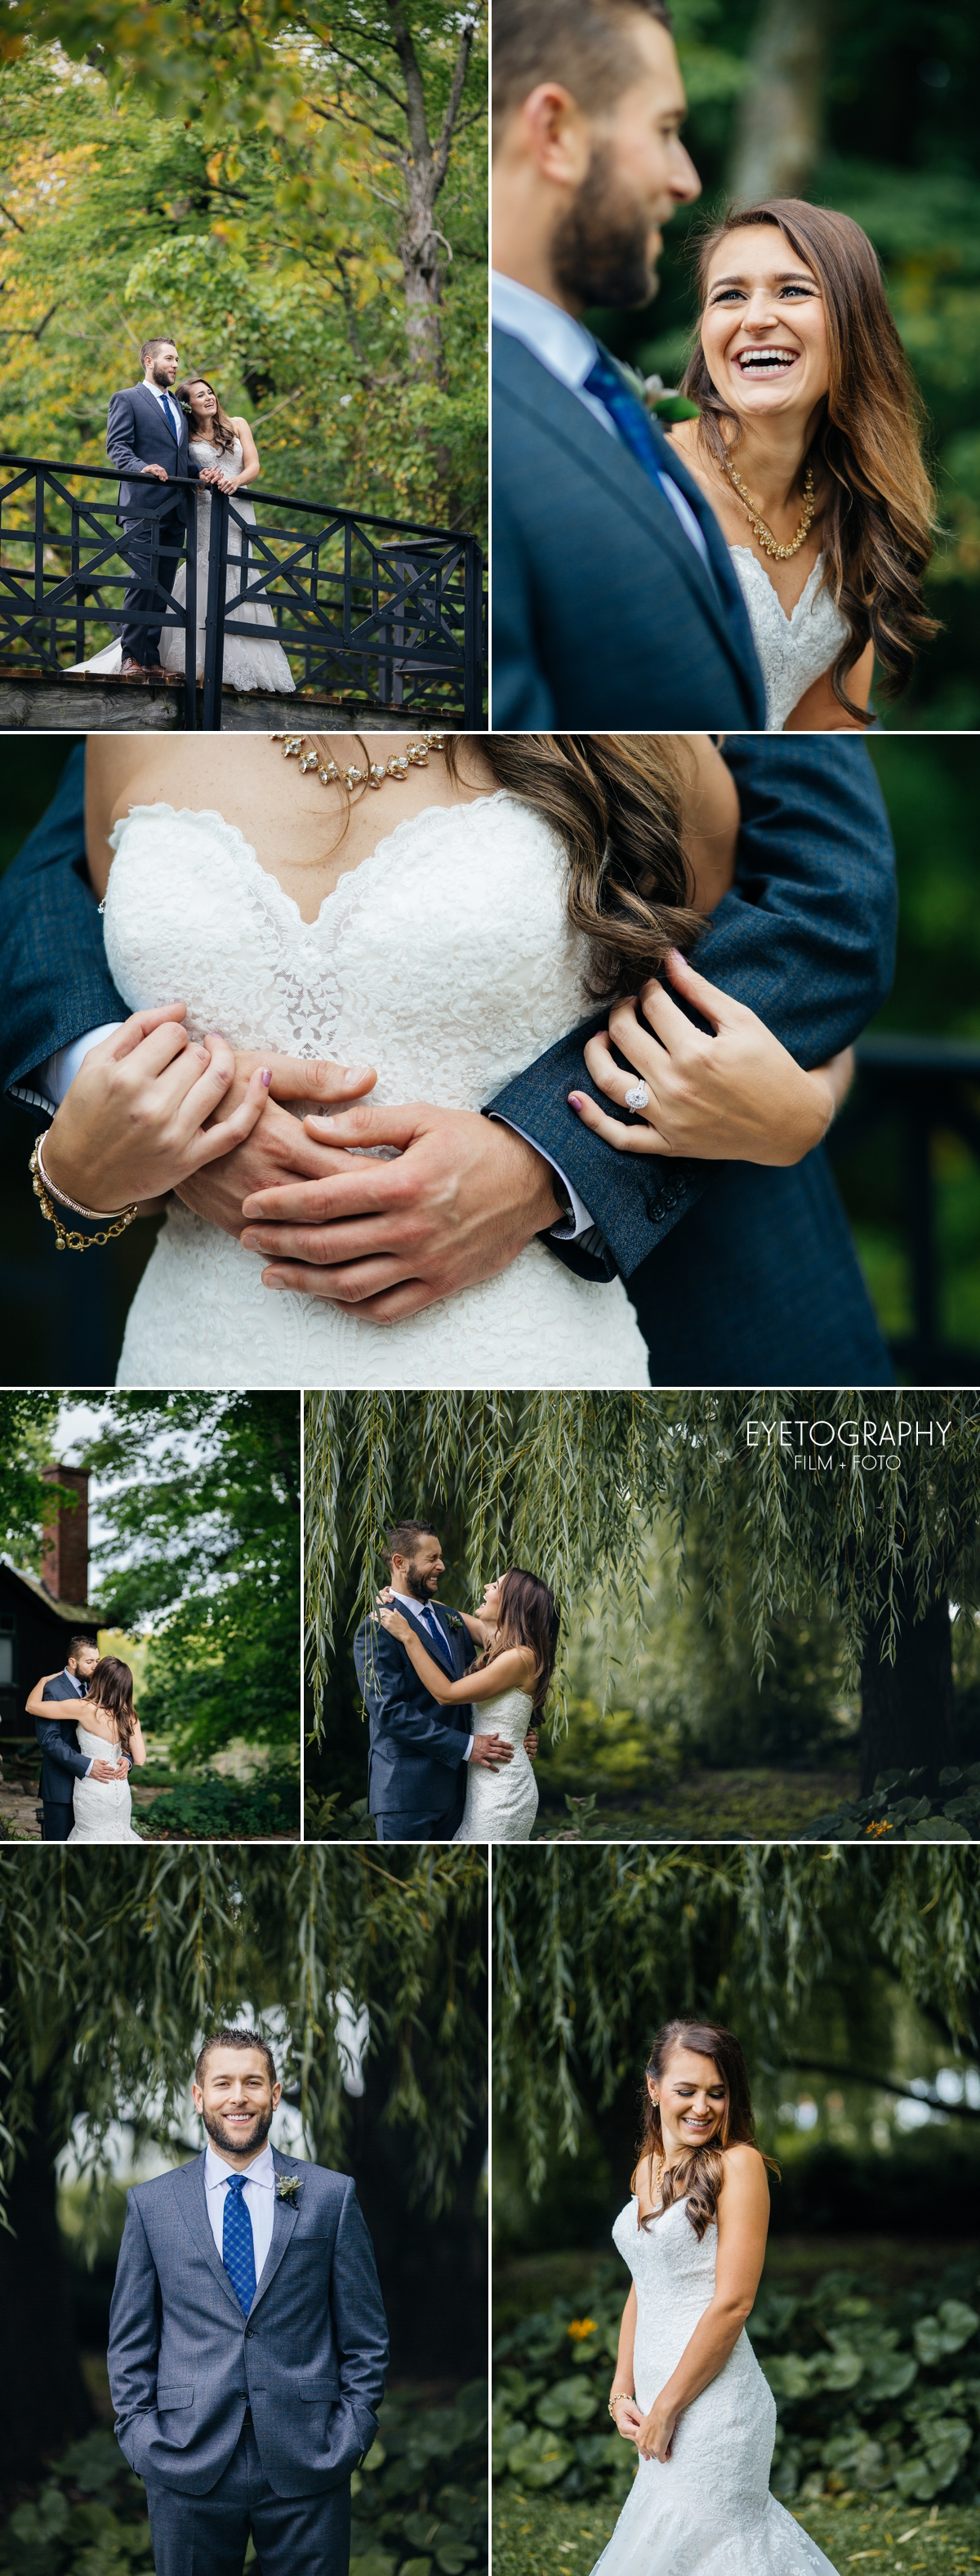 Stout's Island Lodge Wedding Photography | Andrea + Chris | Eyetography Film + Foto | Birchwood, Wisconsin 5